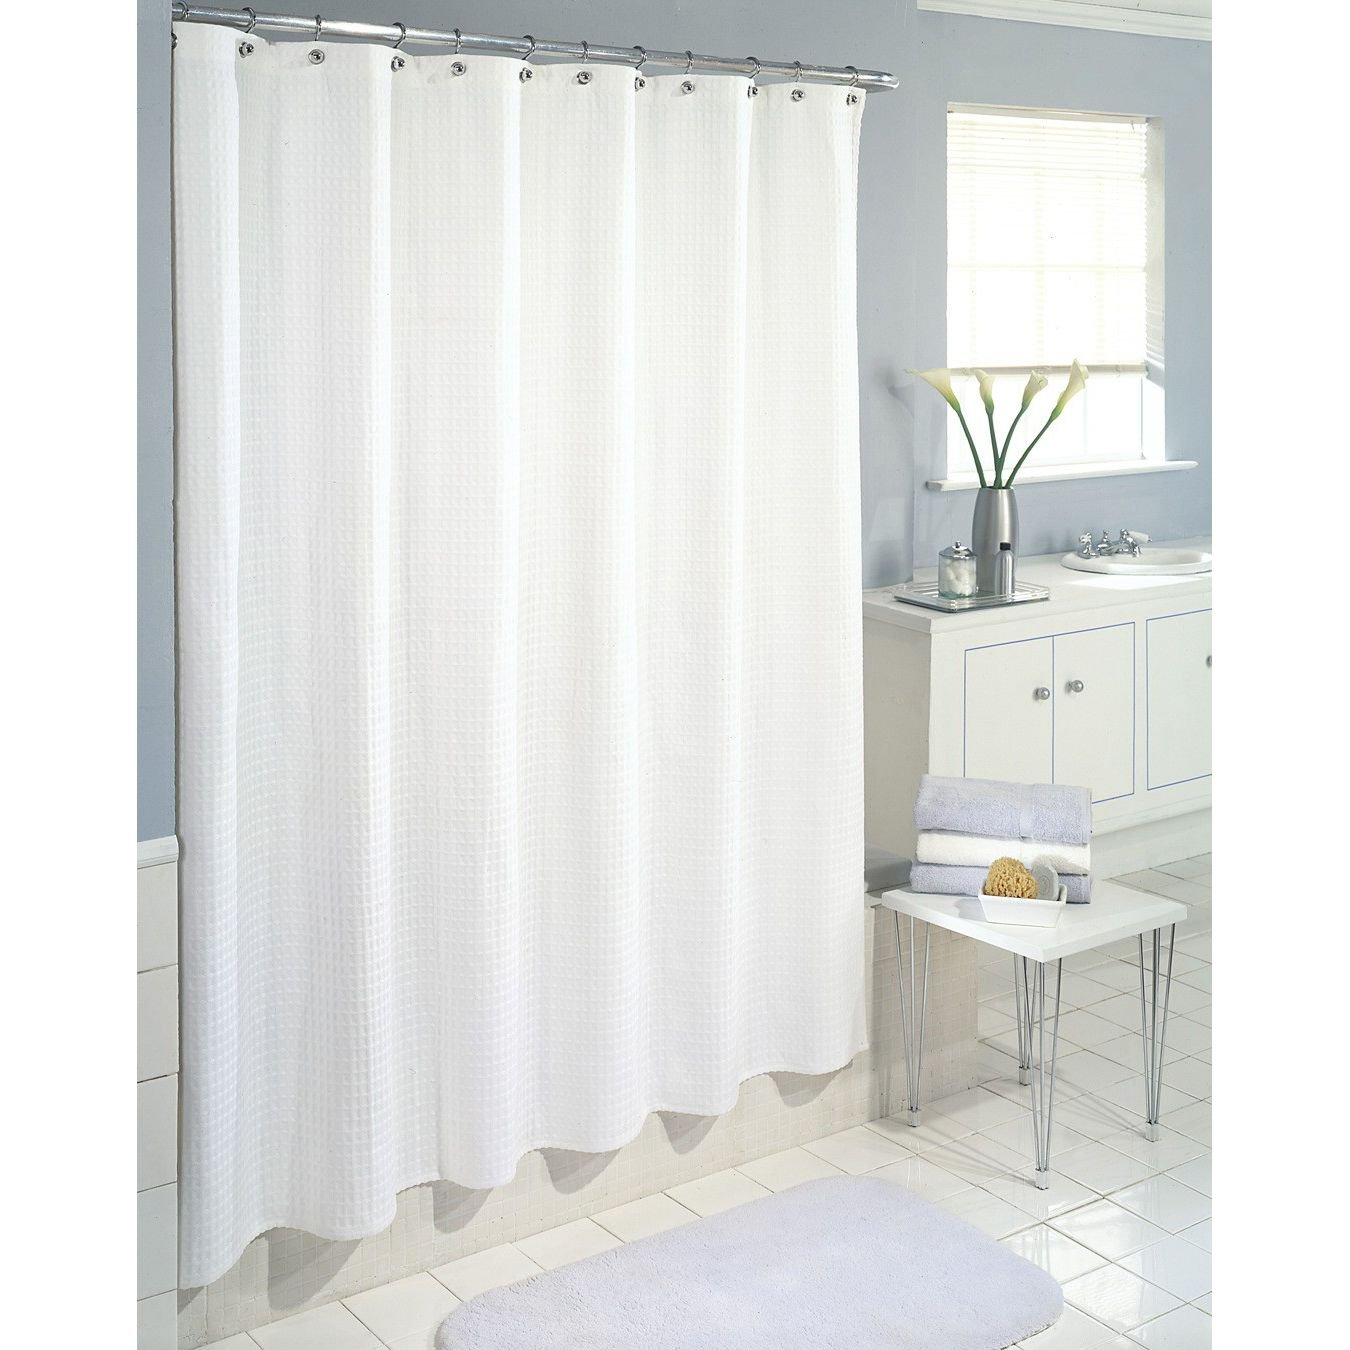 DeLaines Frosted Shower Curtain Liner Kid Safe